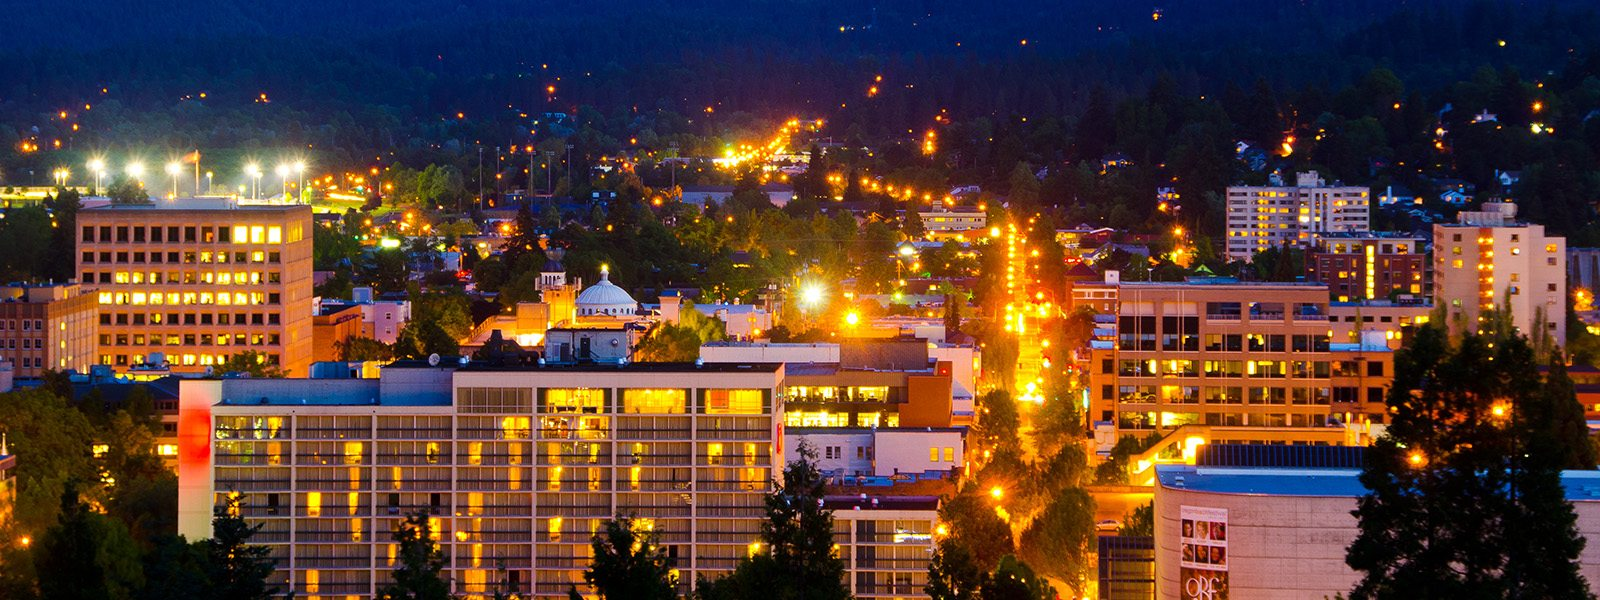 Eugene, OR at night